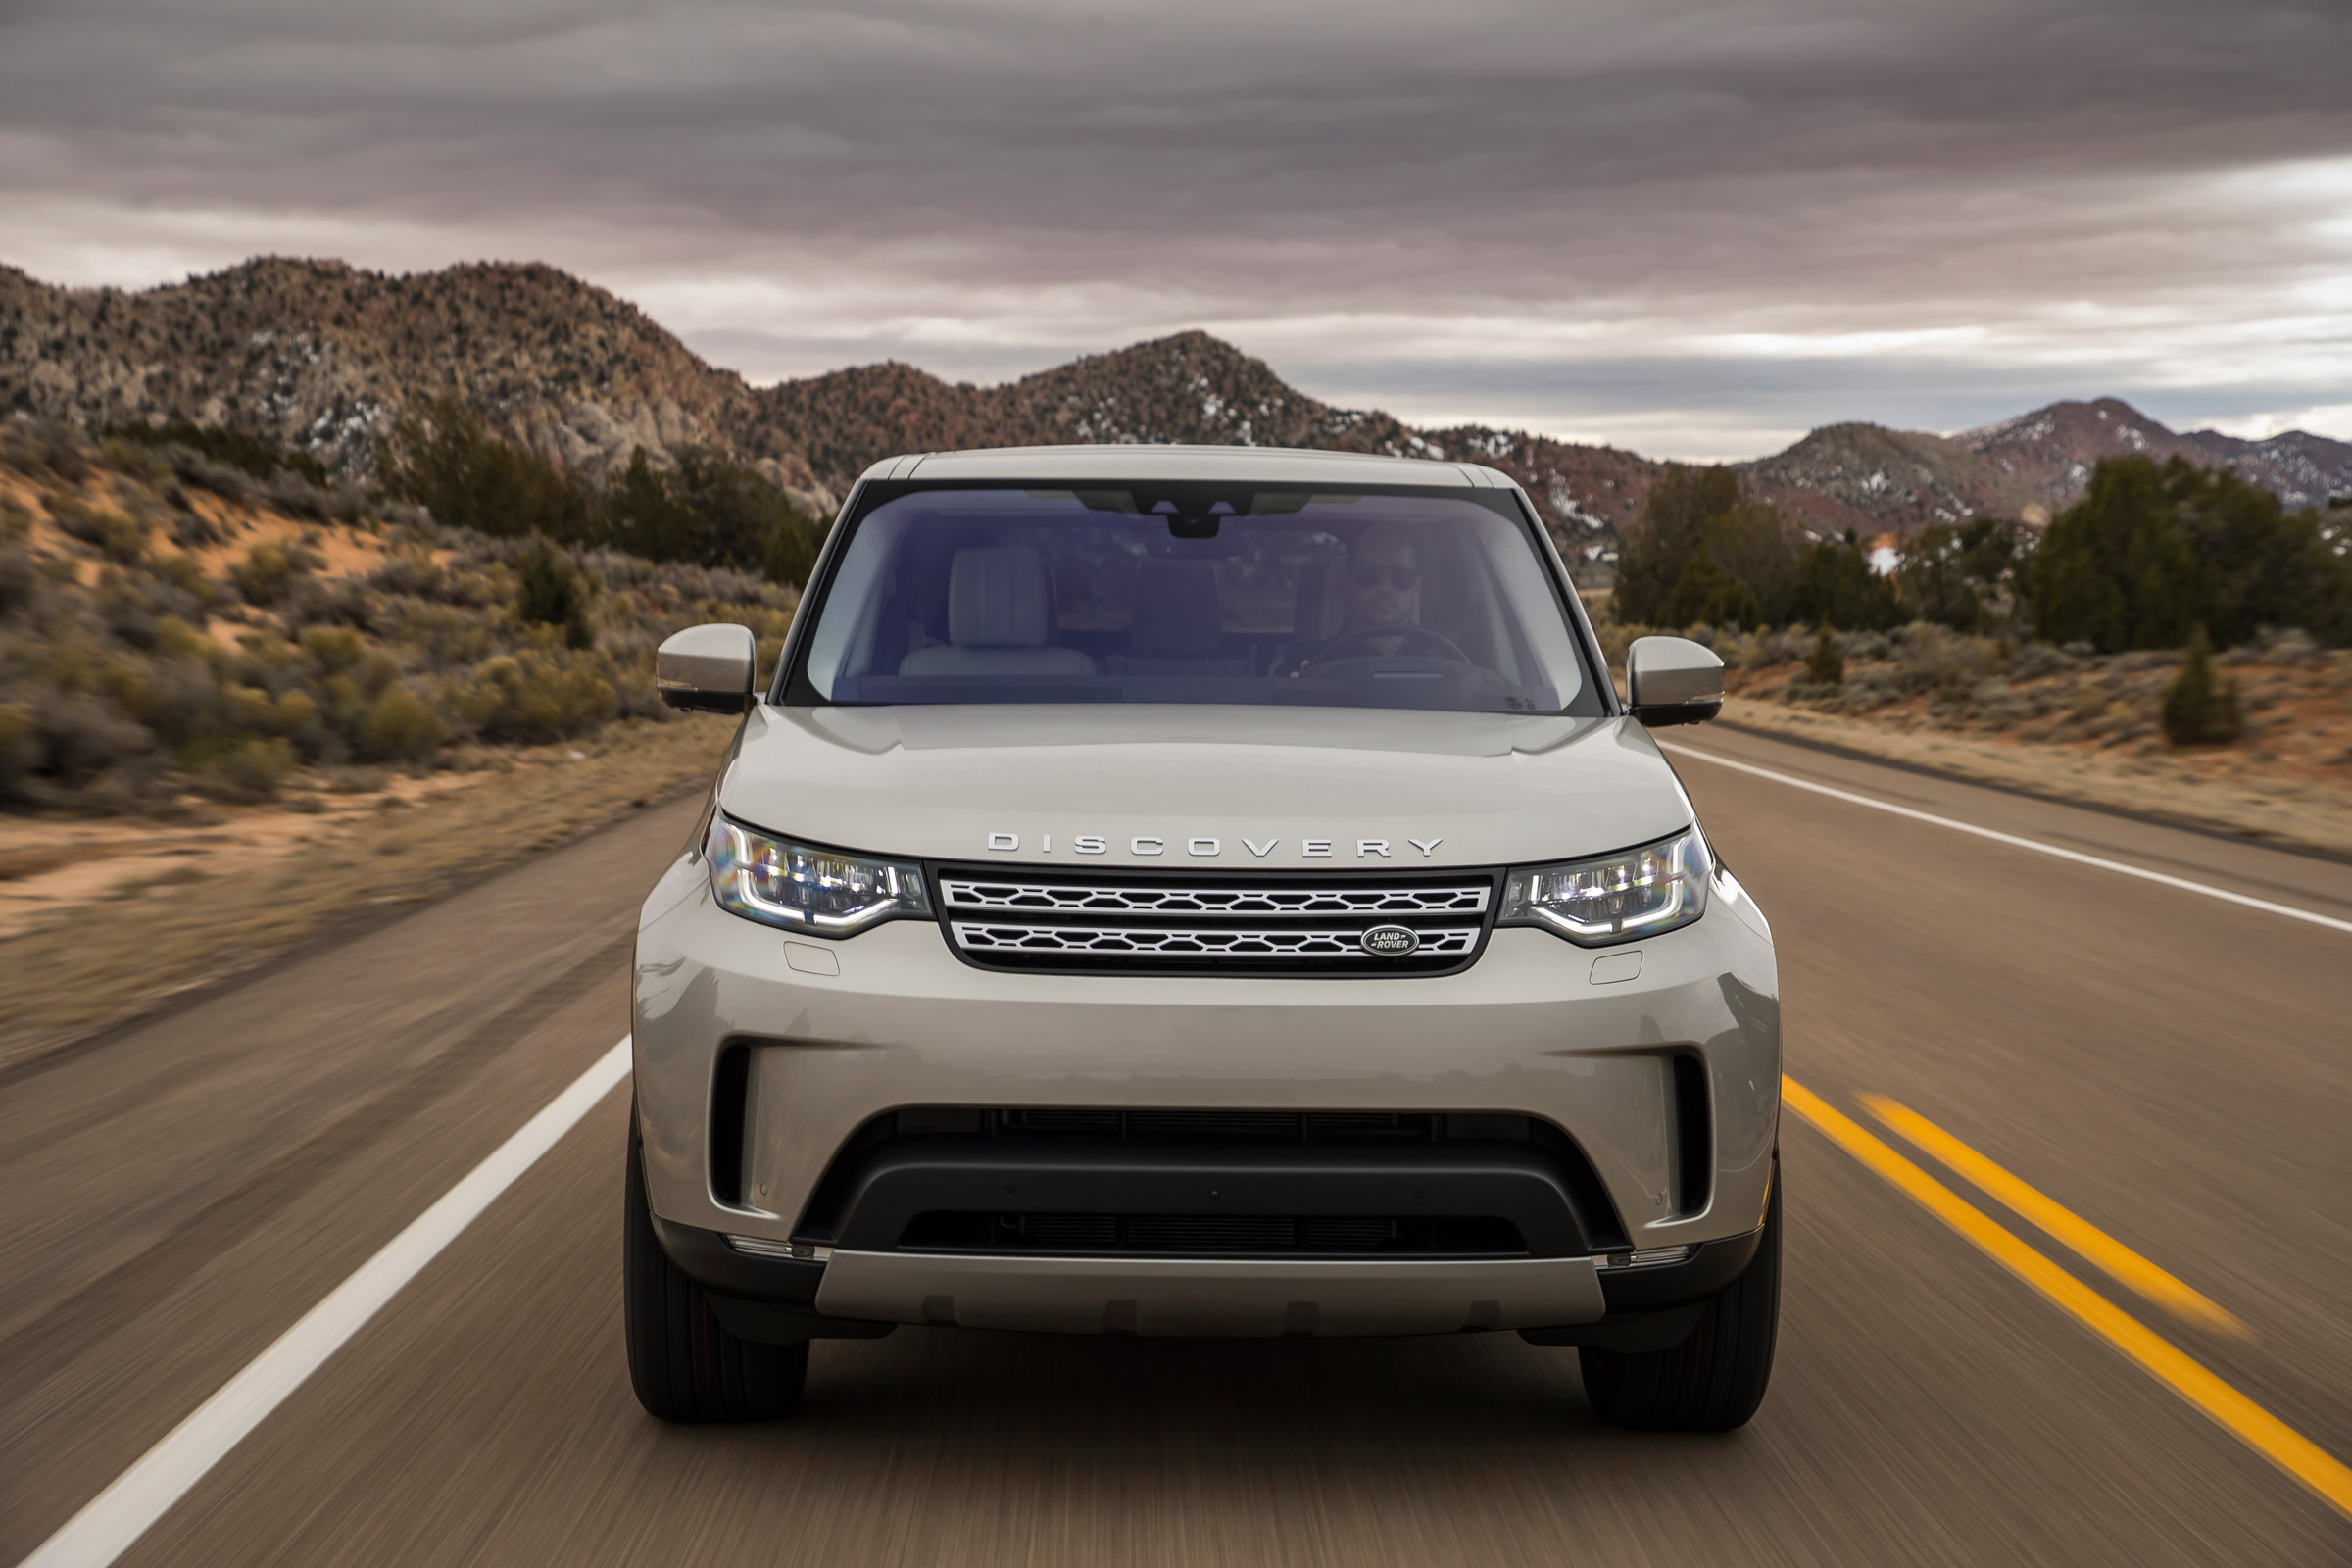 2017 Land Rover Discovery Test Drive Front View (Photo 13 of 17)